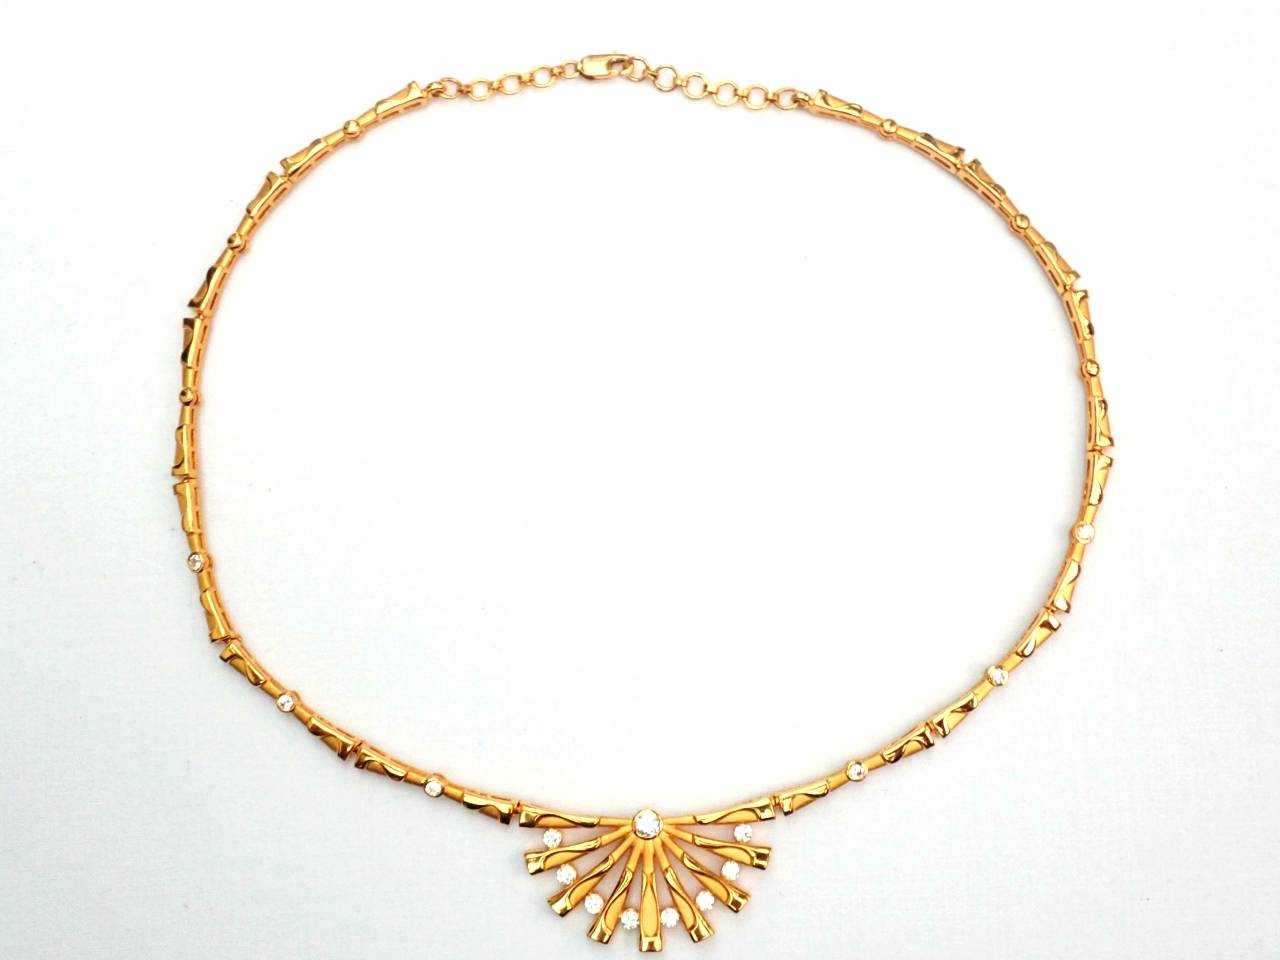 AA000995 - Designer! 22 Carat Yellow Gold Cubic Zirconia Lady's Choker Necklace 32gms 17 Inch